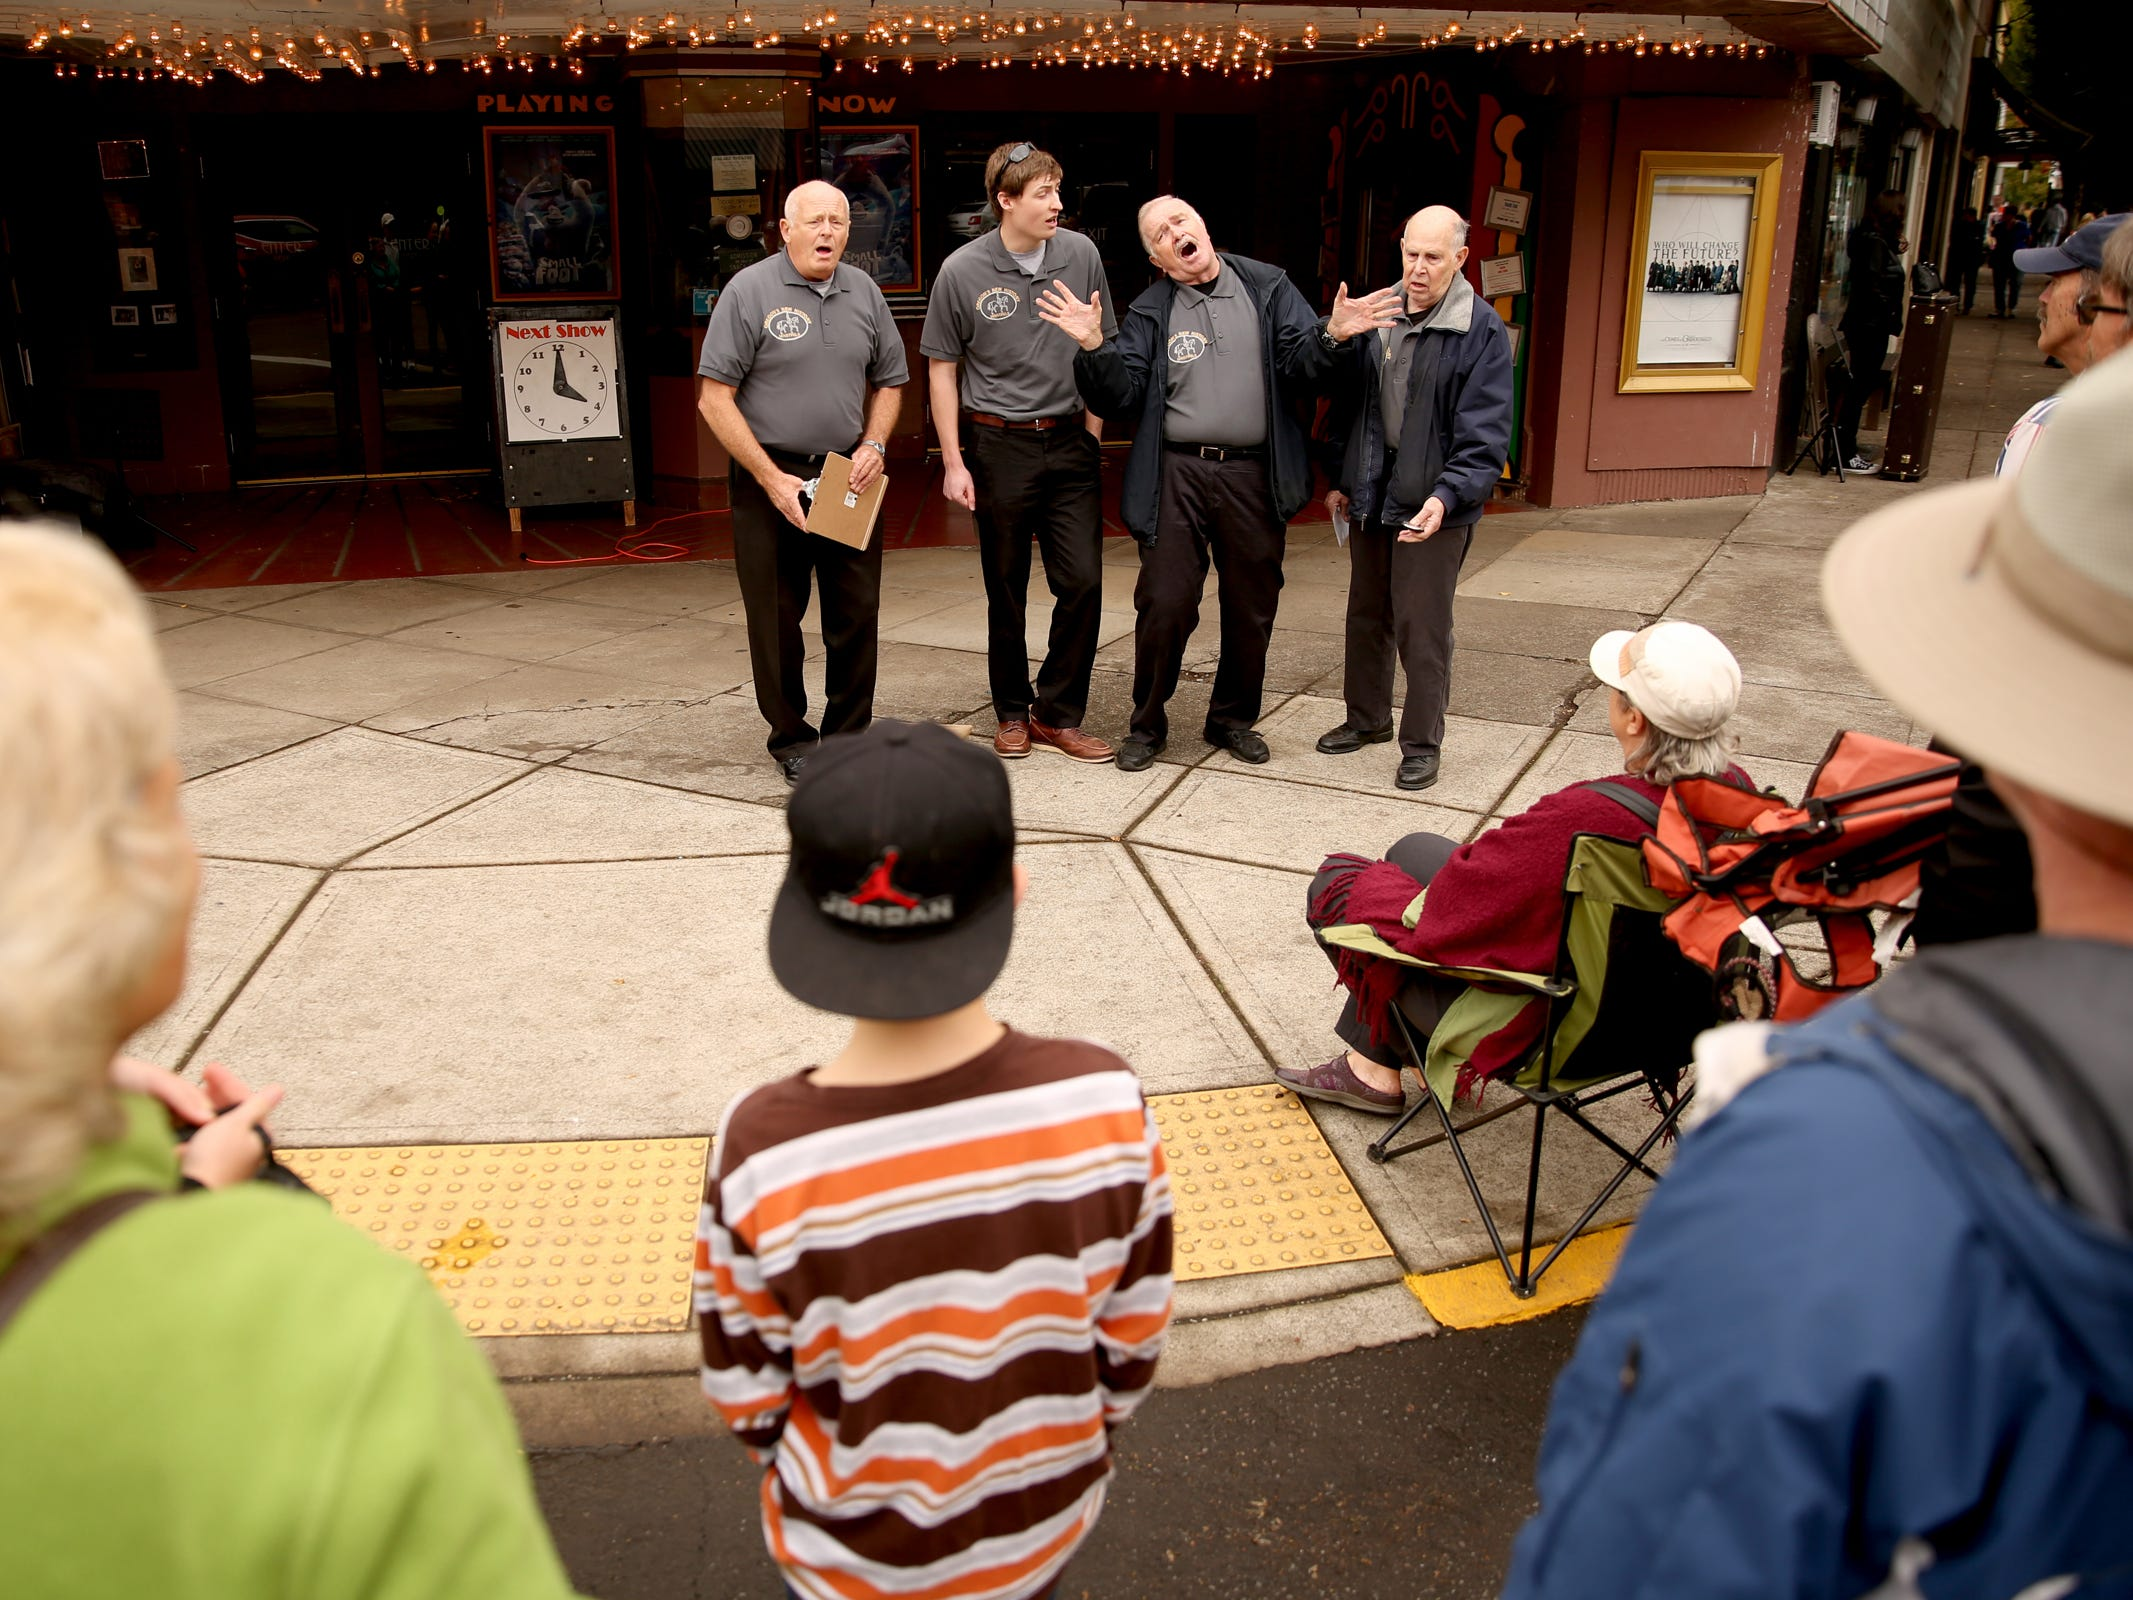 Oregon's New History Minstrels performs during the Silverton Sidewalk Shindig, a culture of music festival, in downtown Silverton on Saturday, Oct. 6, 2018.